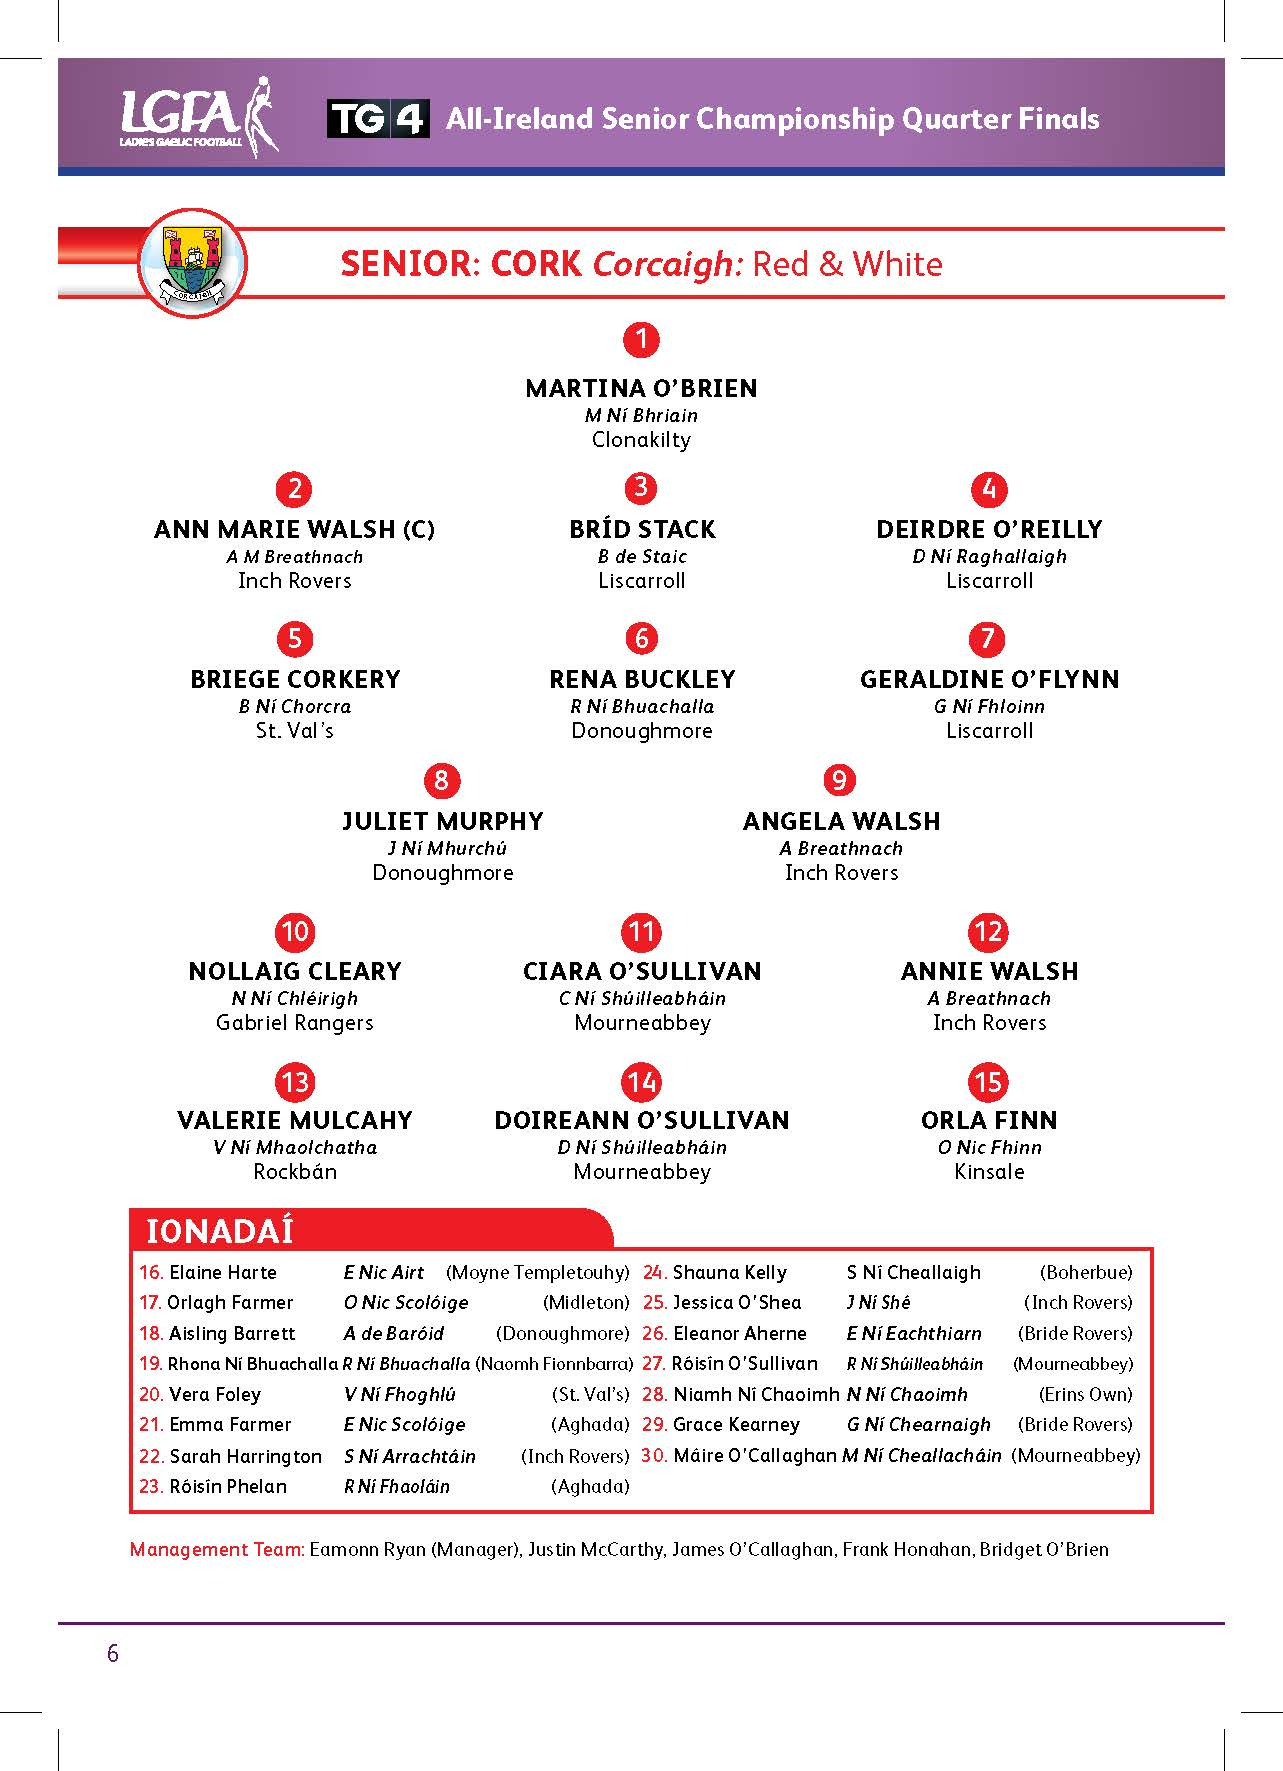 Cork Senior Team 24-08-13